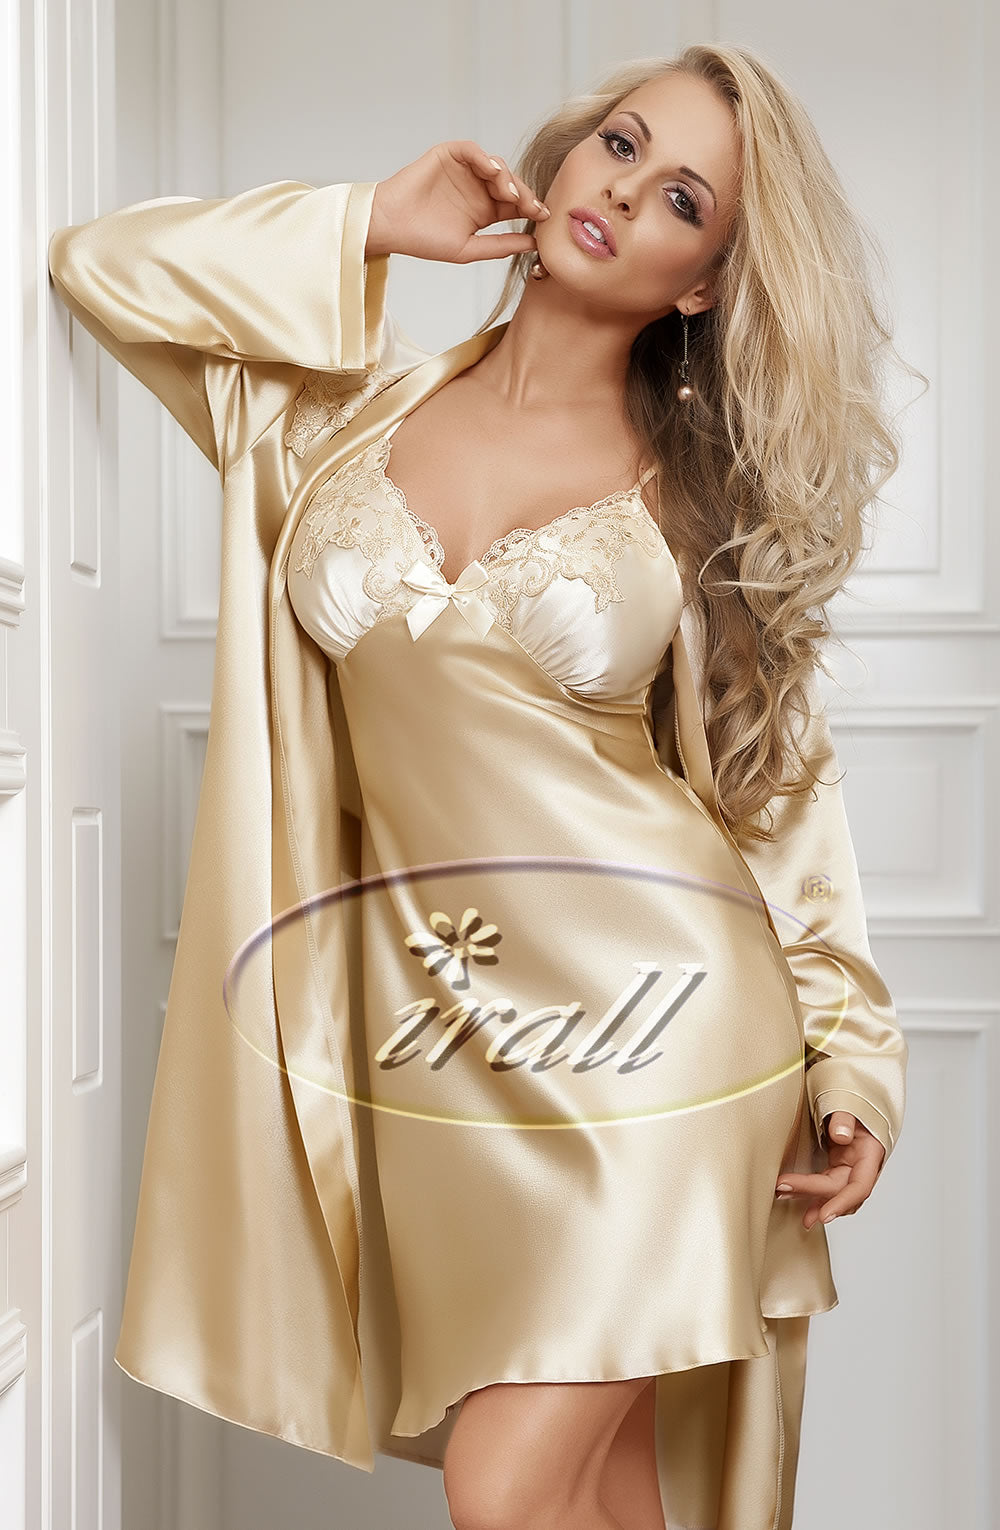 Irall Irall Parisa Nightdress Beige Large